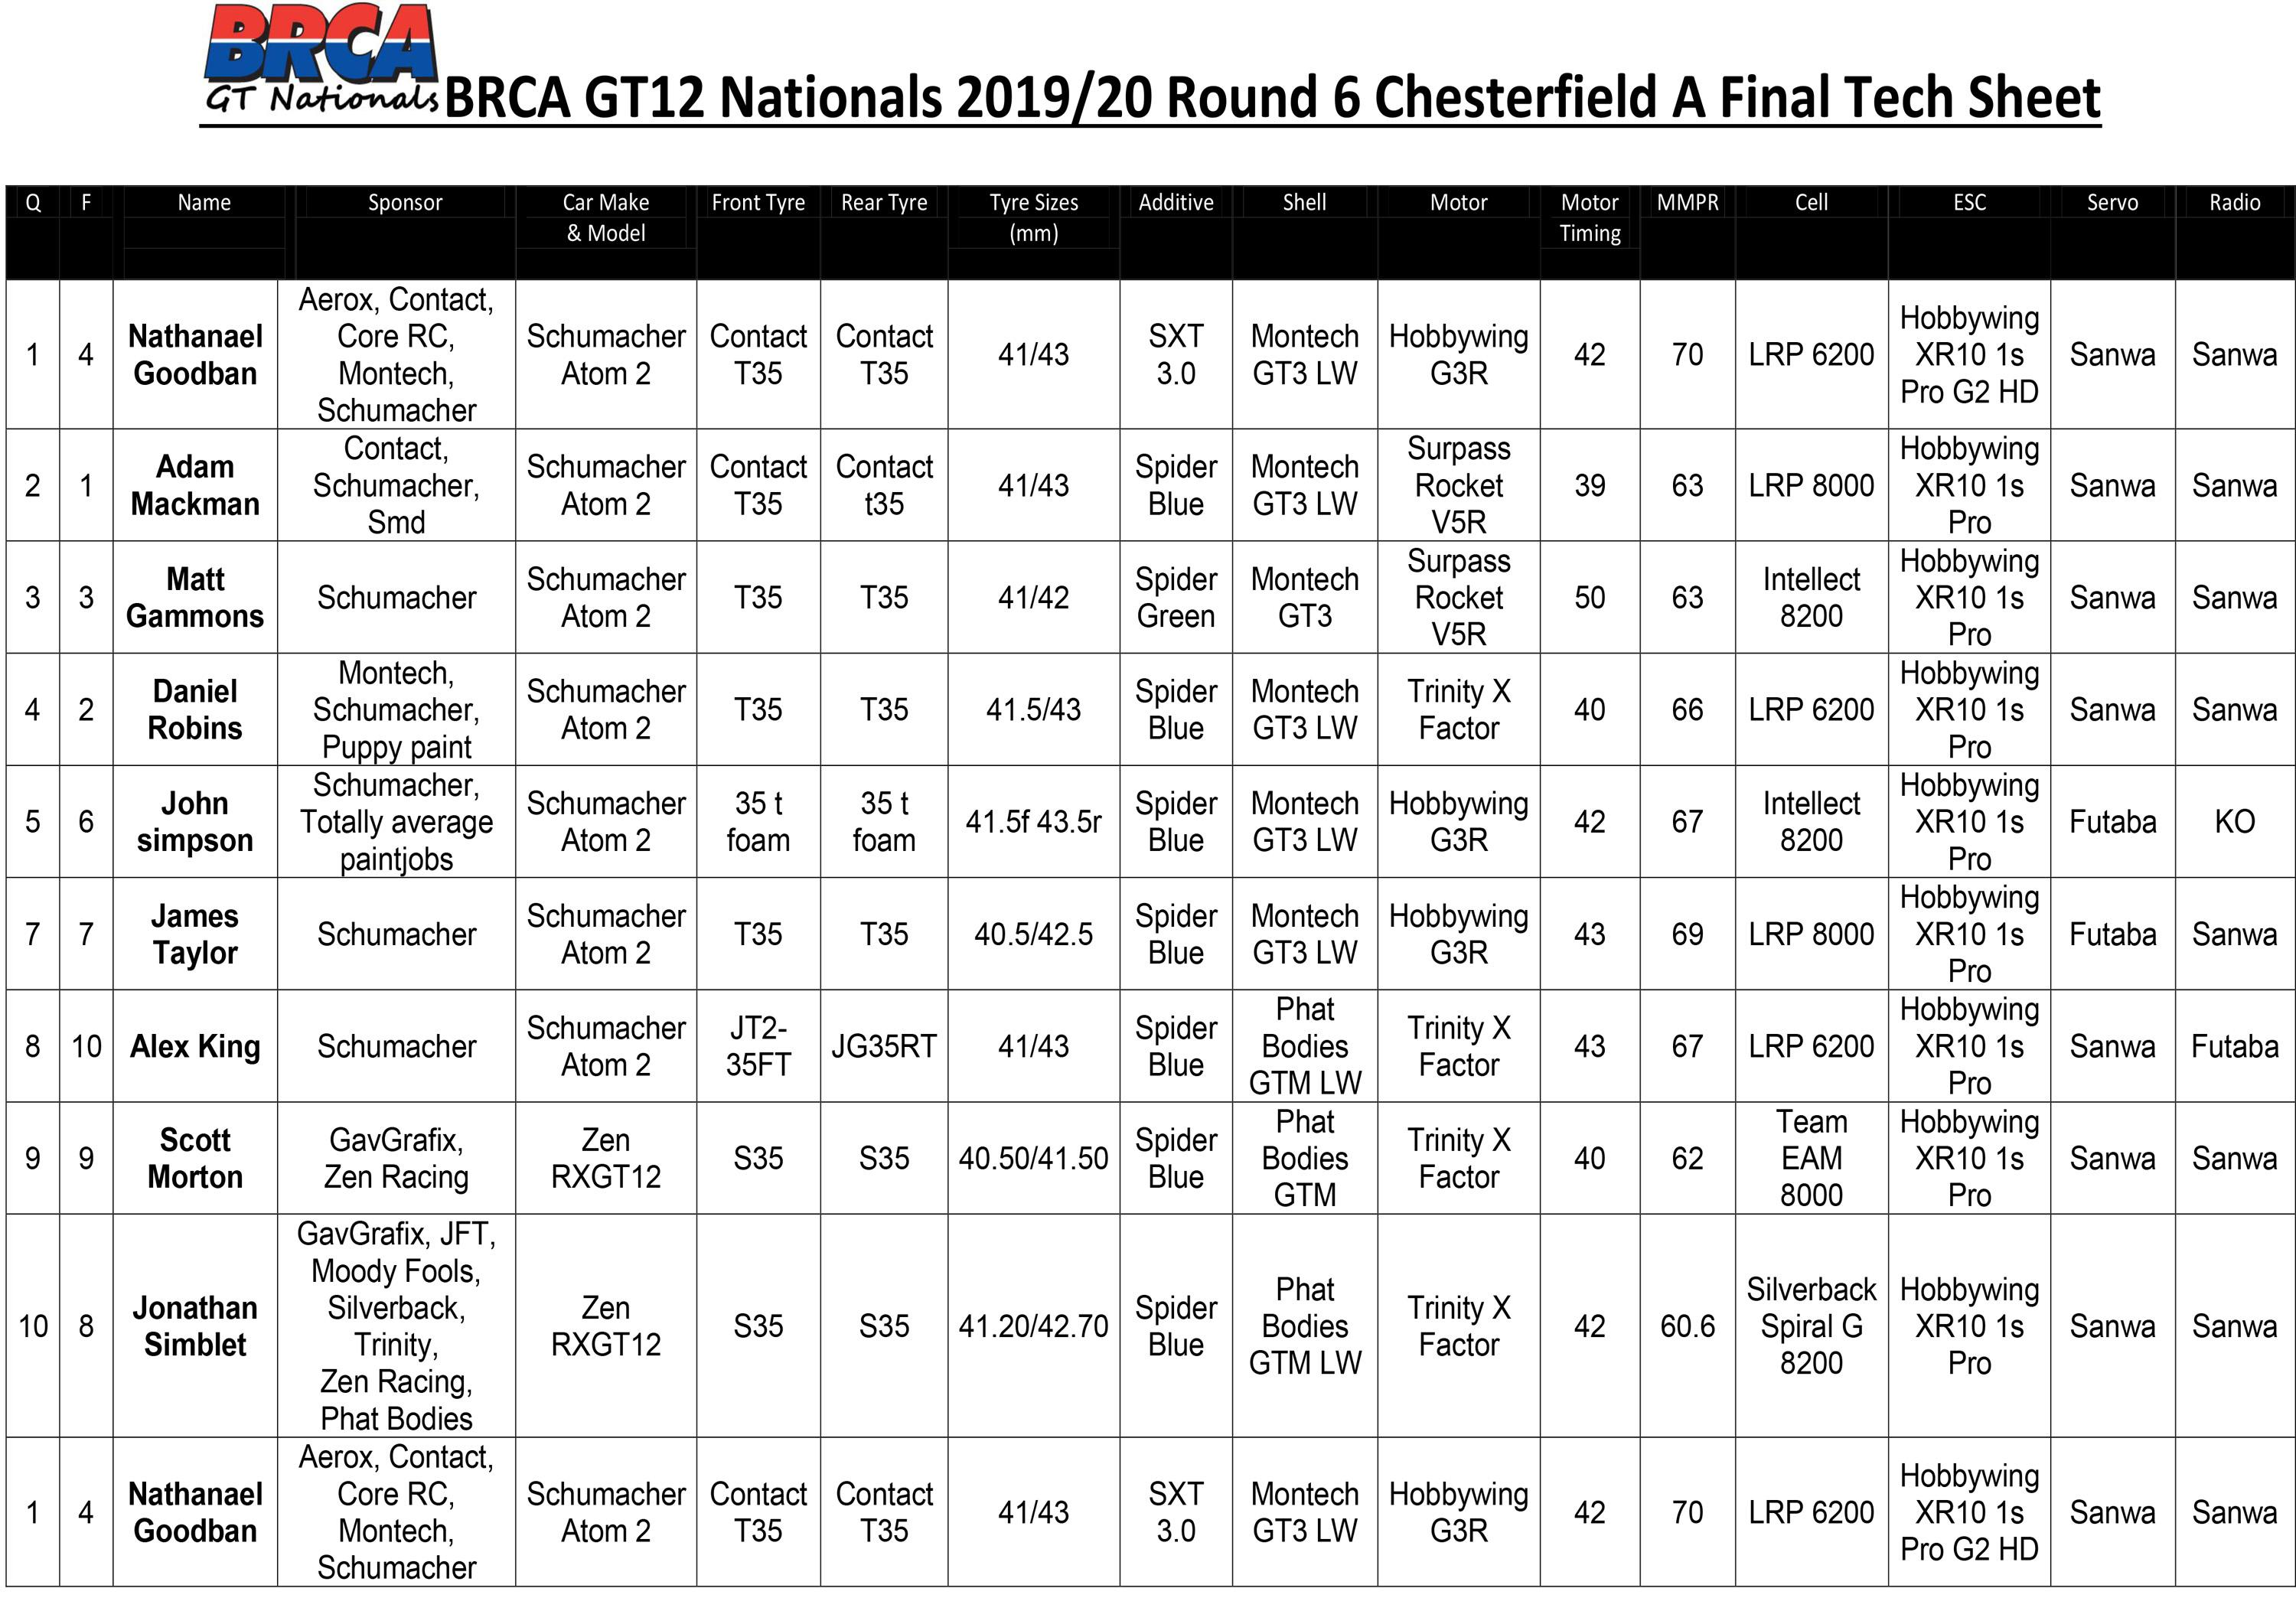 BRCA GT Tech Sheet RD6 Chesterfield